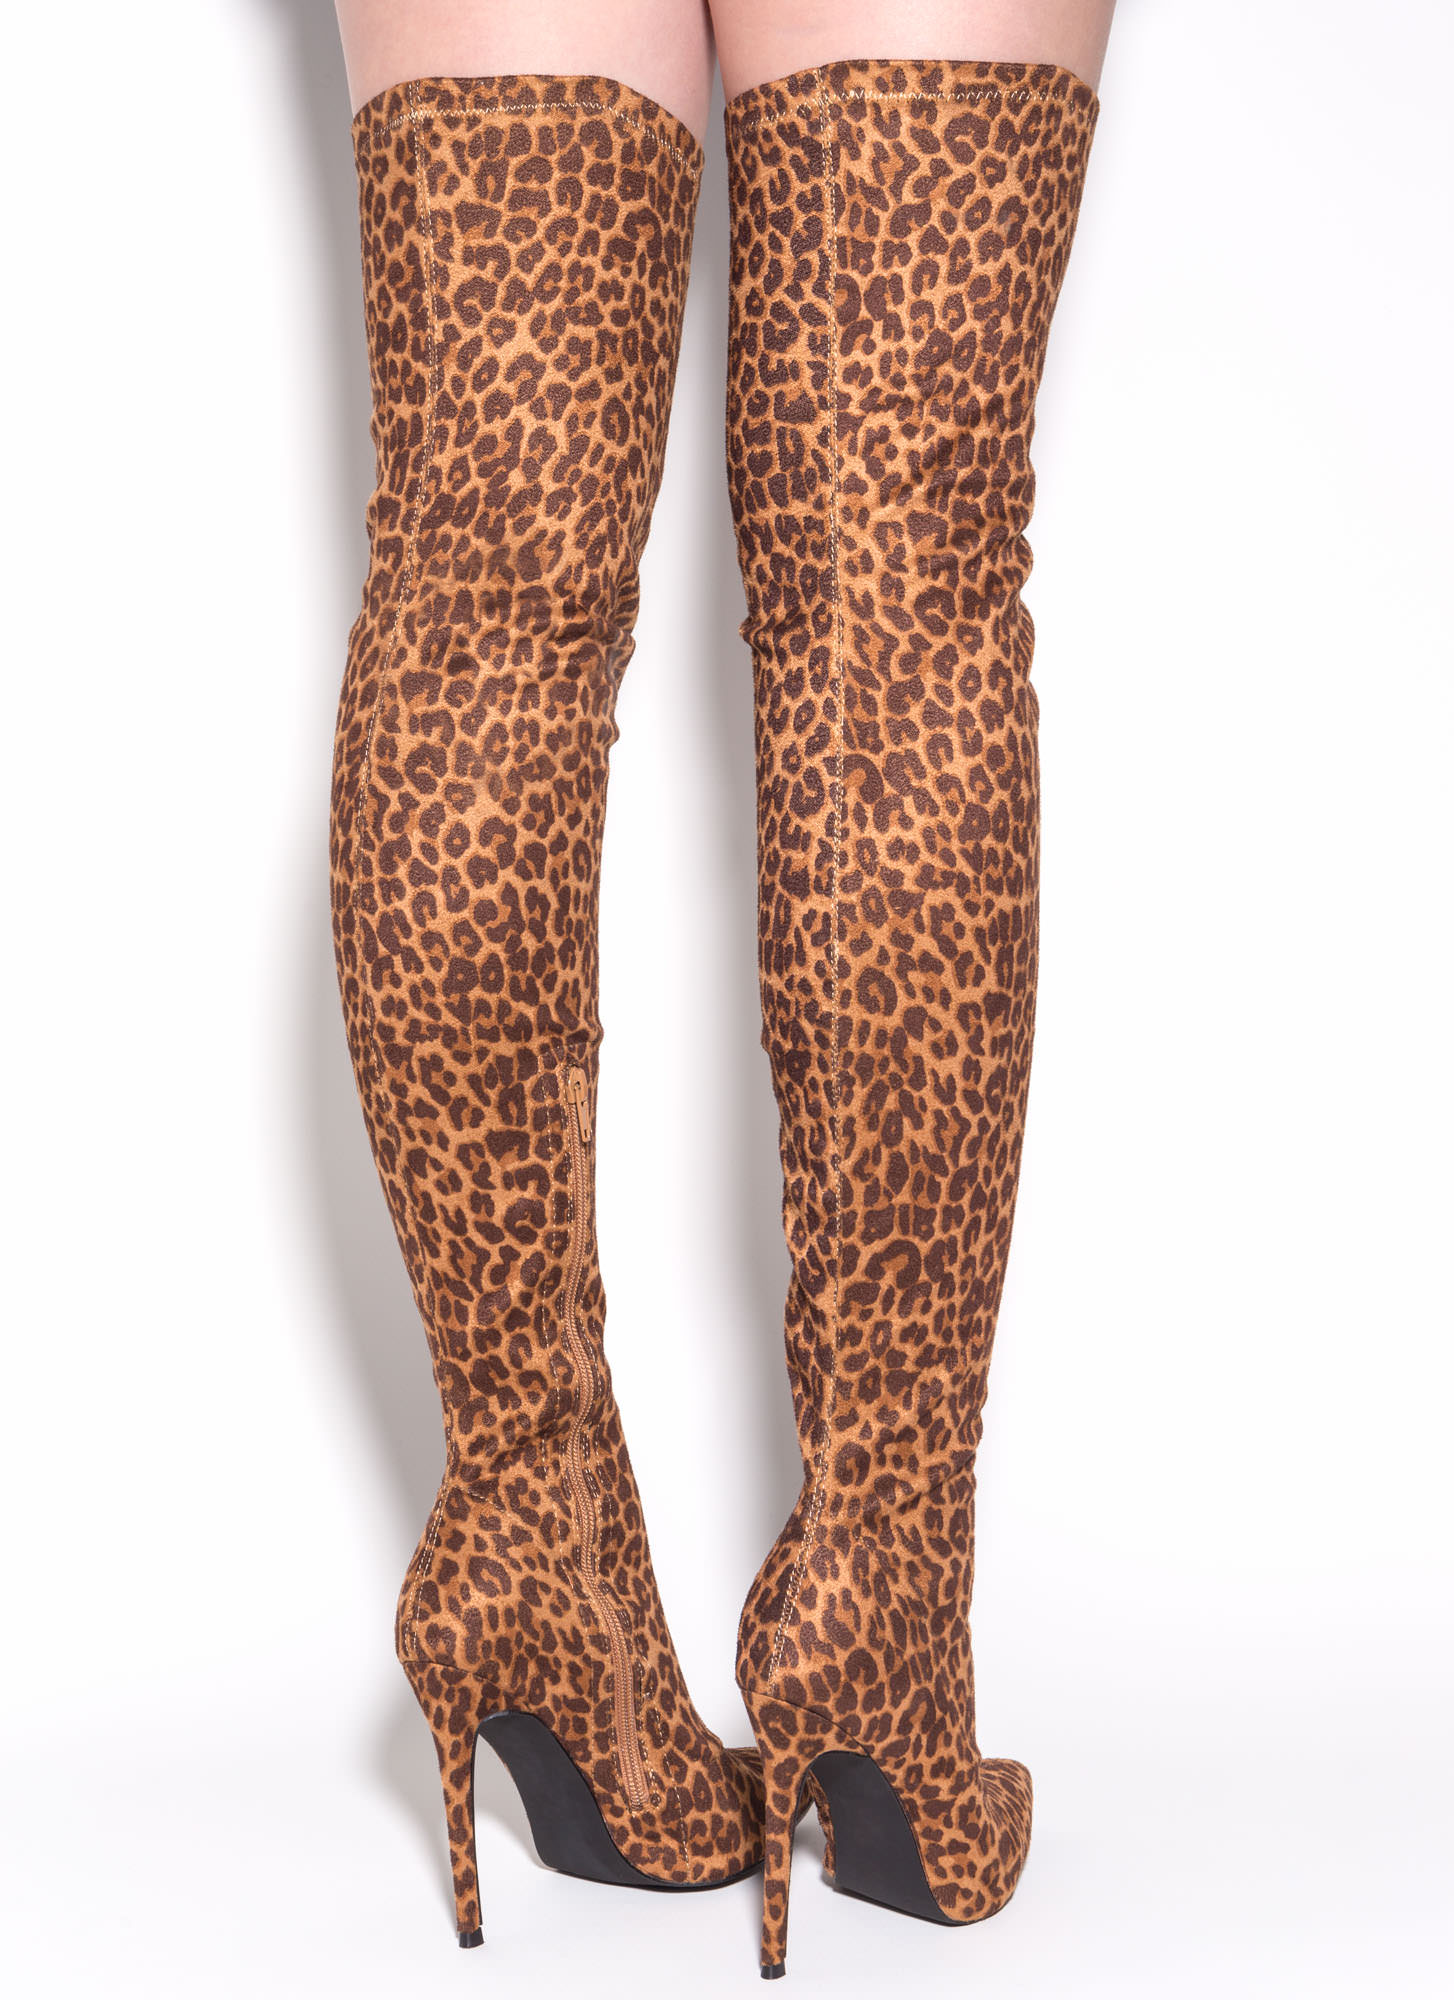 Long Story Chic Leopard Thigh-High Boots LEOPARD